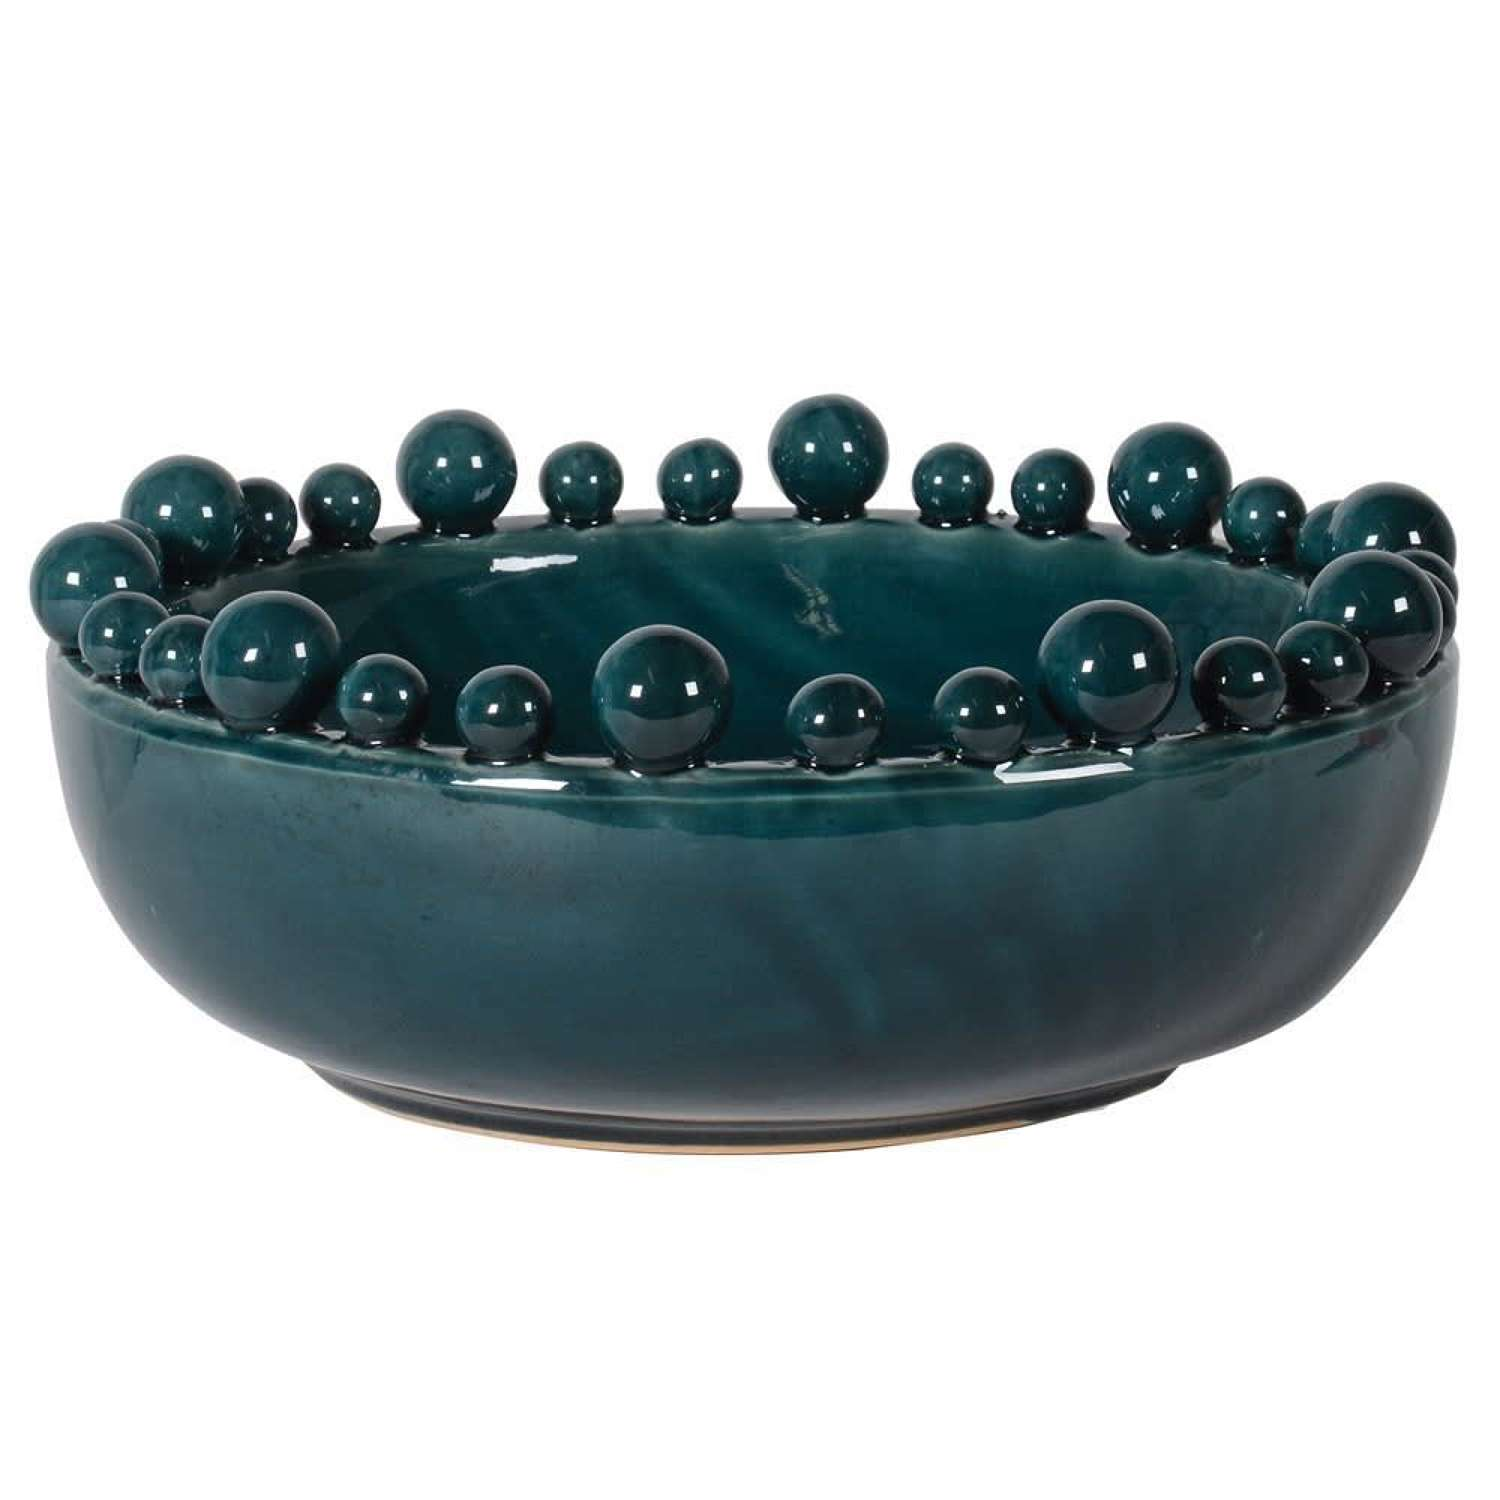 Ceramic Bowl with Ball Rim - Teal